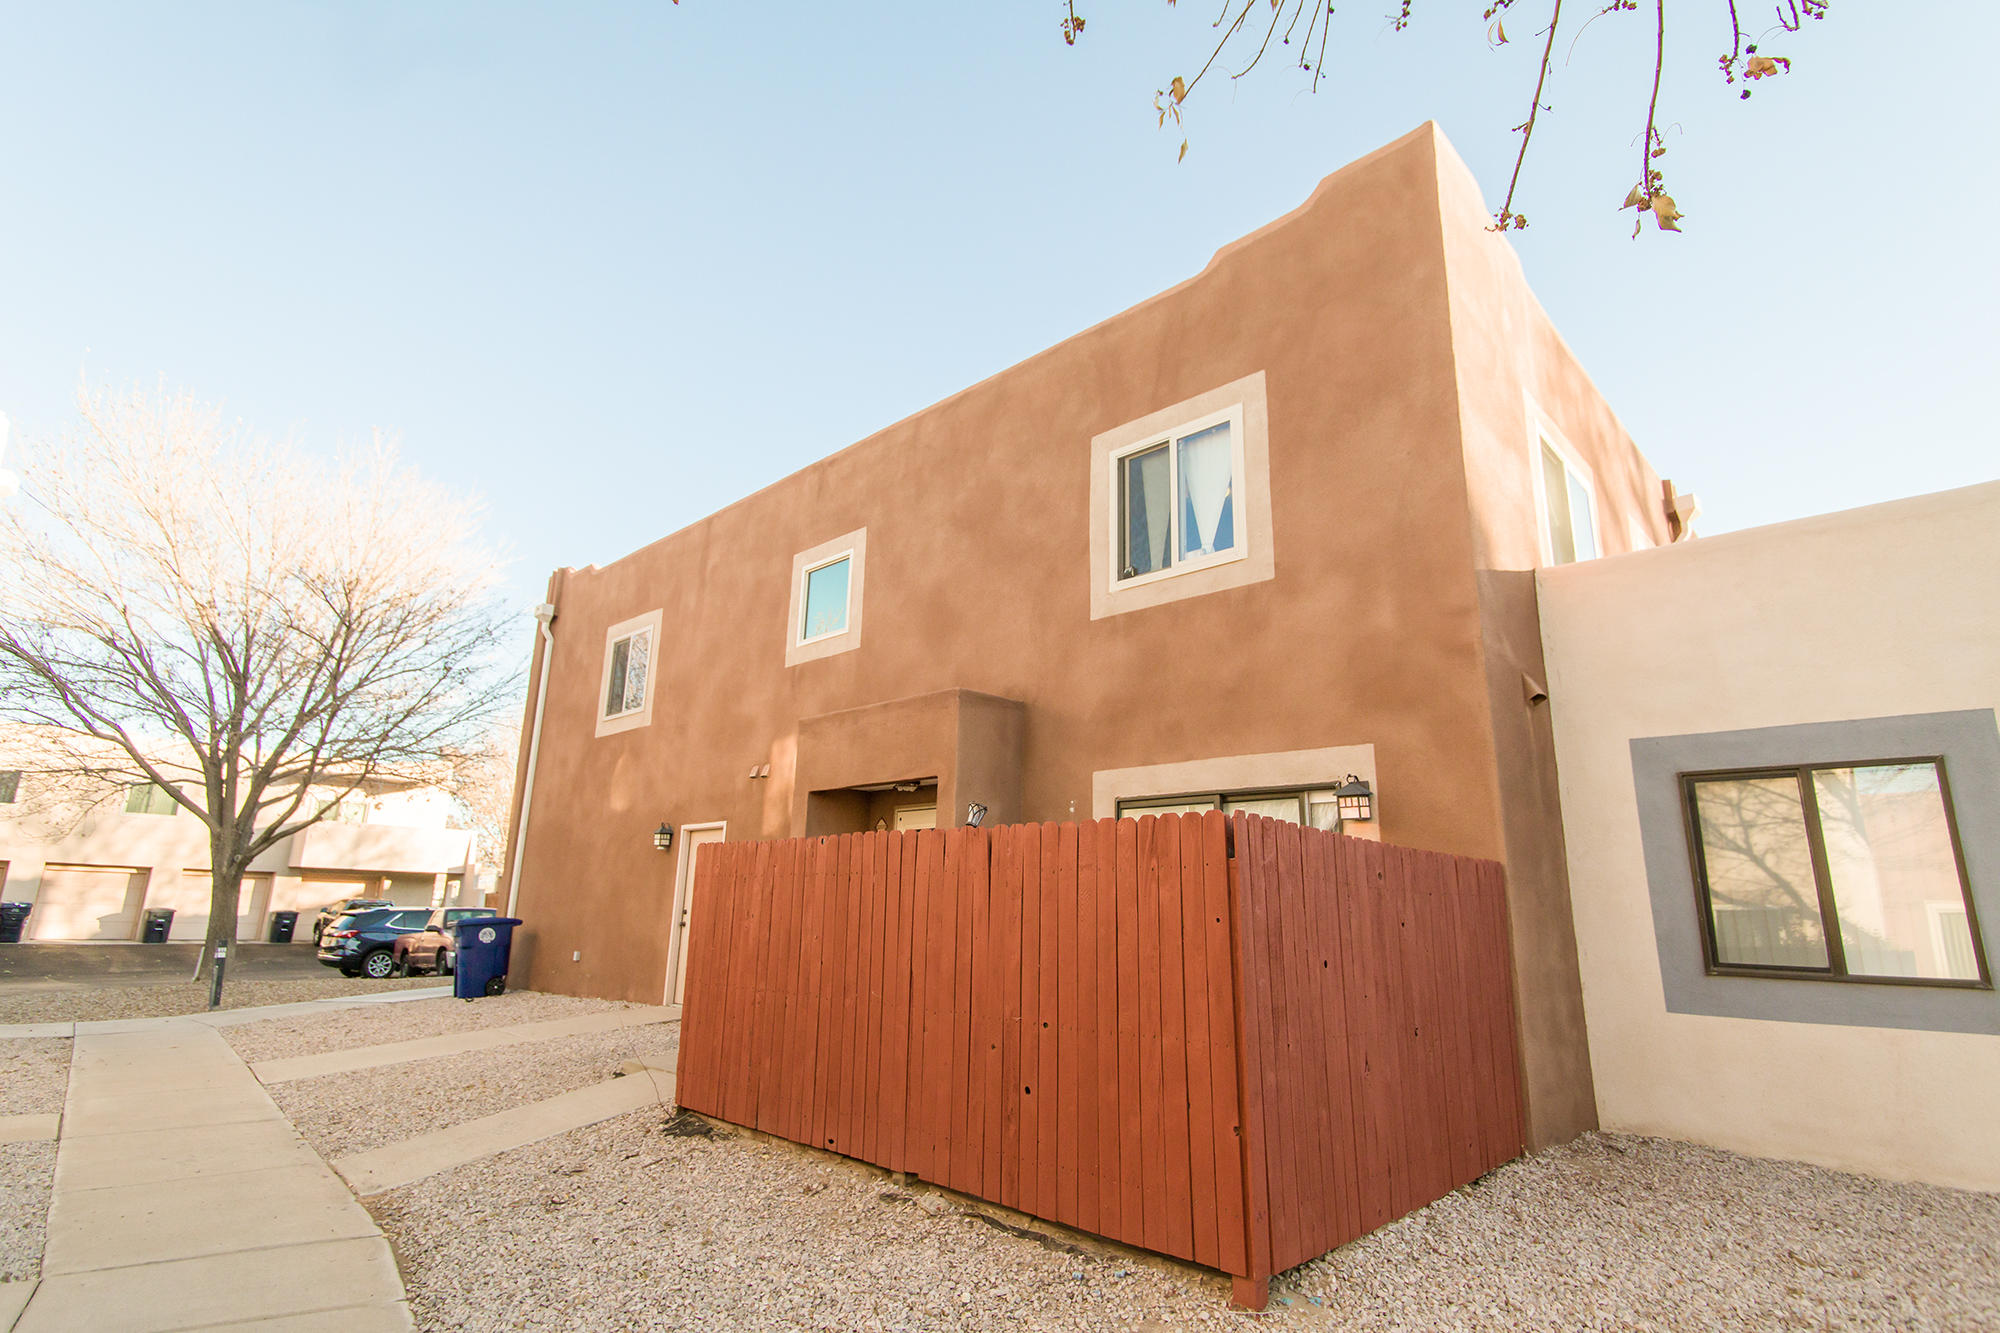 Great 2bedroom/2bath condo in a wonderful location near shopping, schools, parks and more.